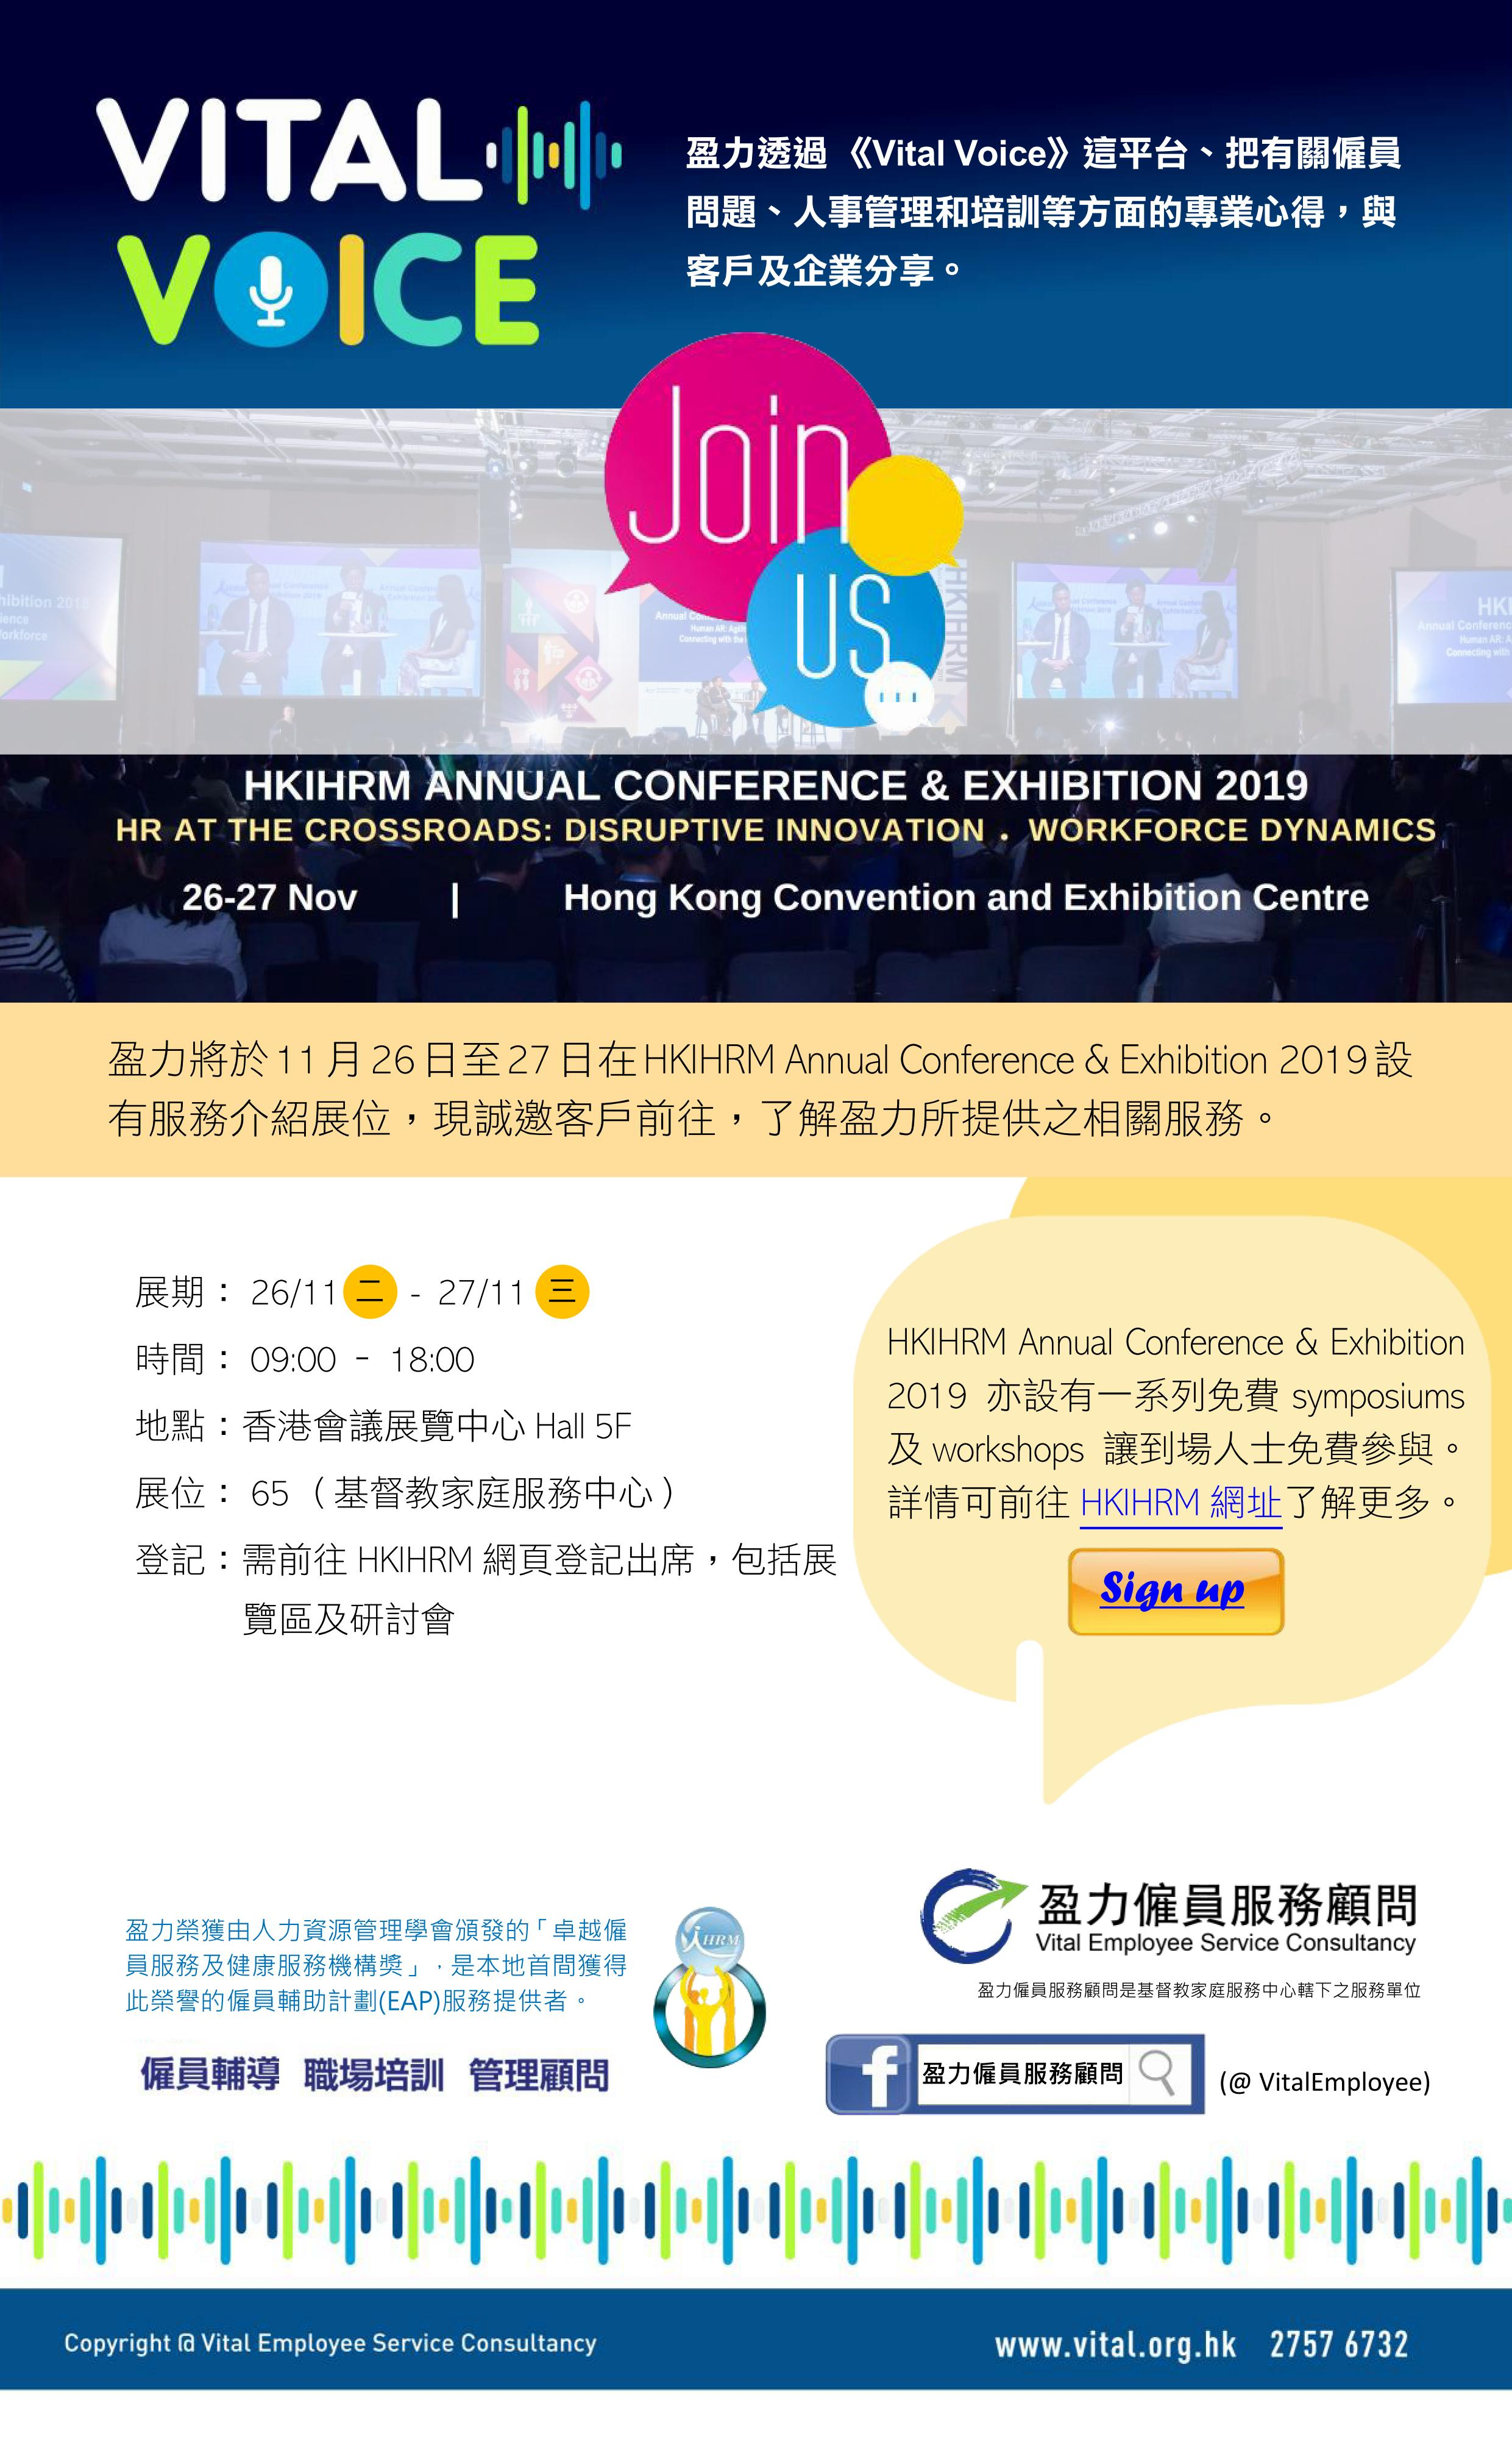 Vital Voice HKIHRM Annual Conference Exhibition 2019